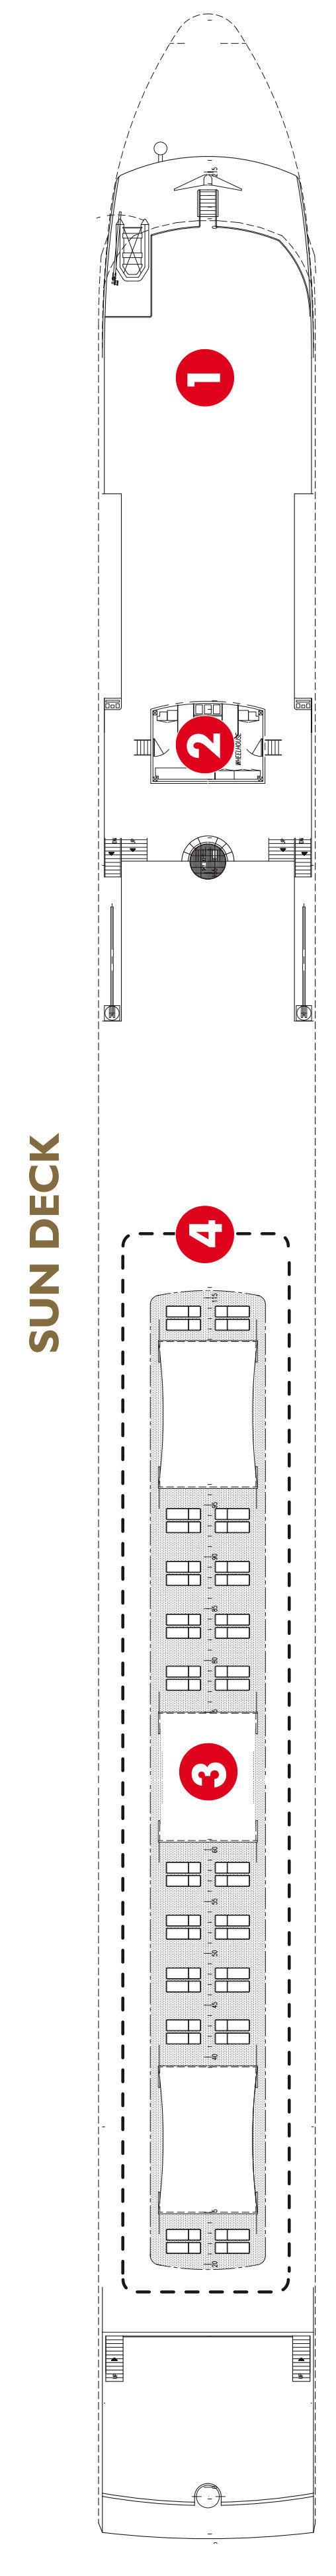 Scenic Jade Sun Deck layout